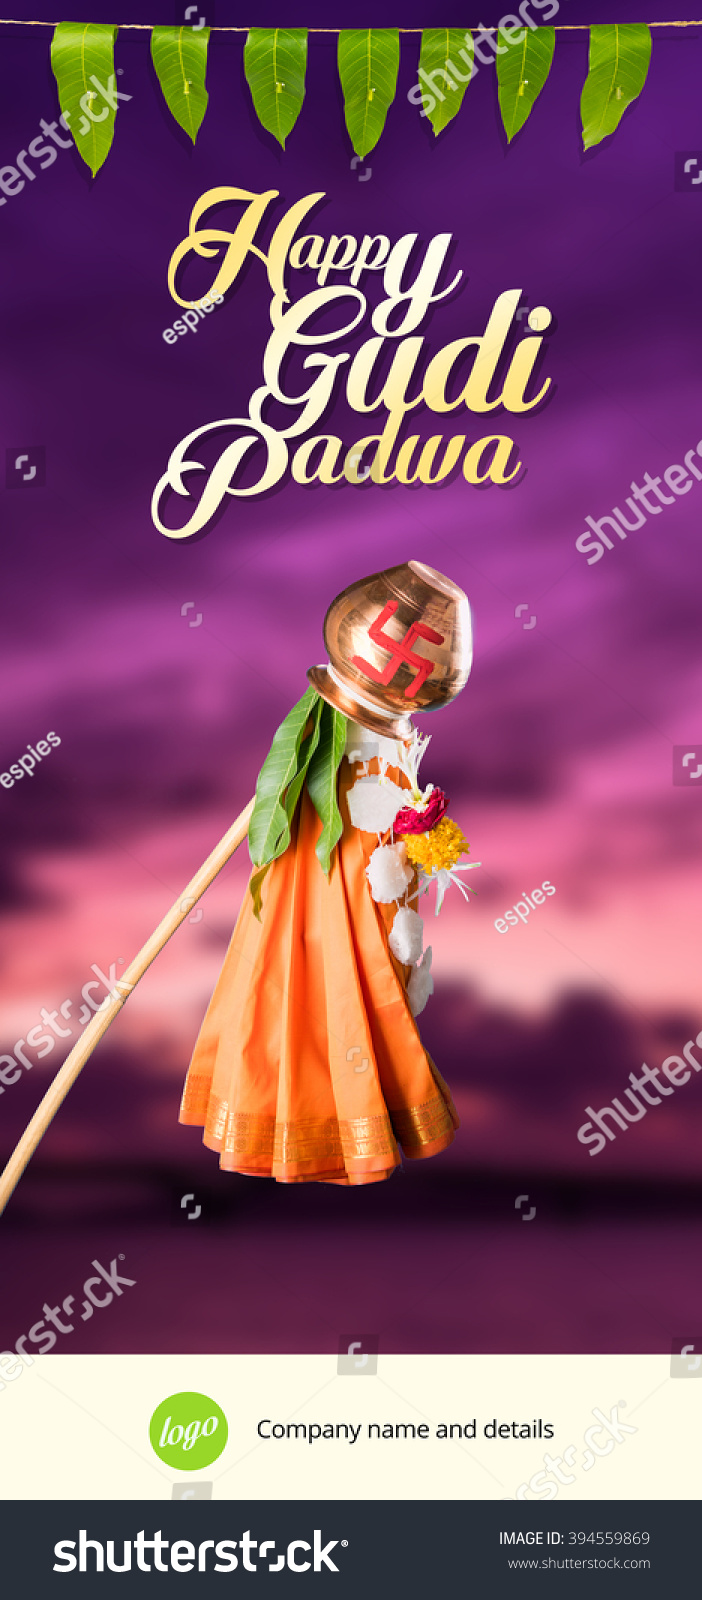 Gudi padwa or gudhi padwa greeting card Indian lunar new year's Day Observed or celebrated by Marathi Hindus